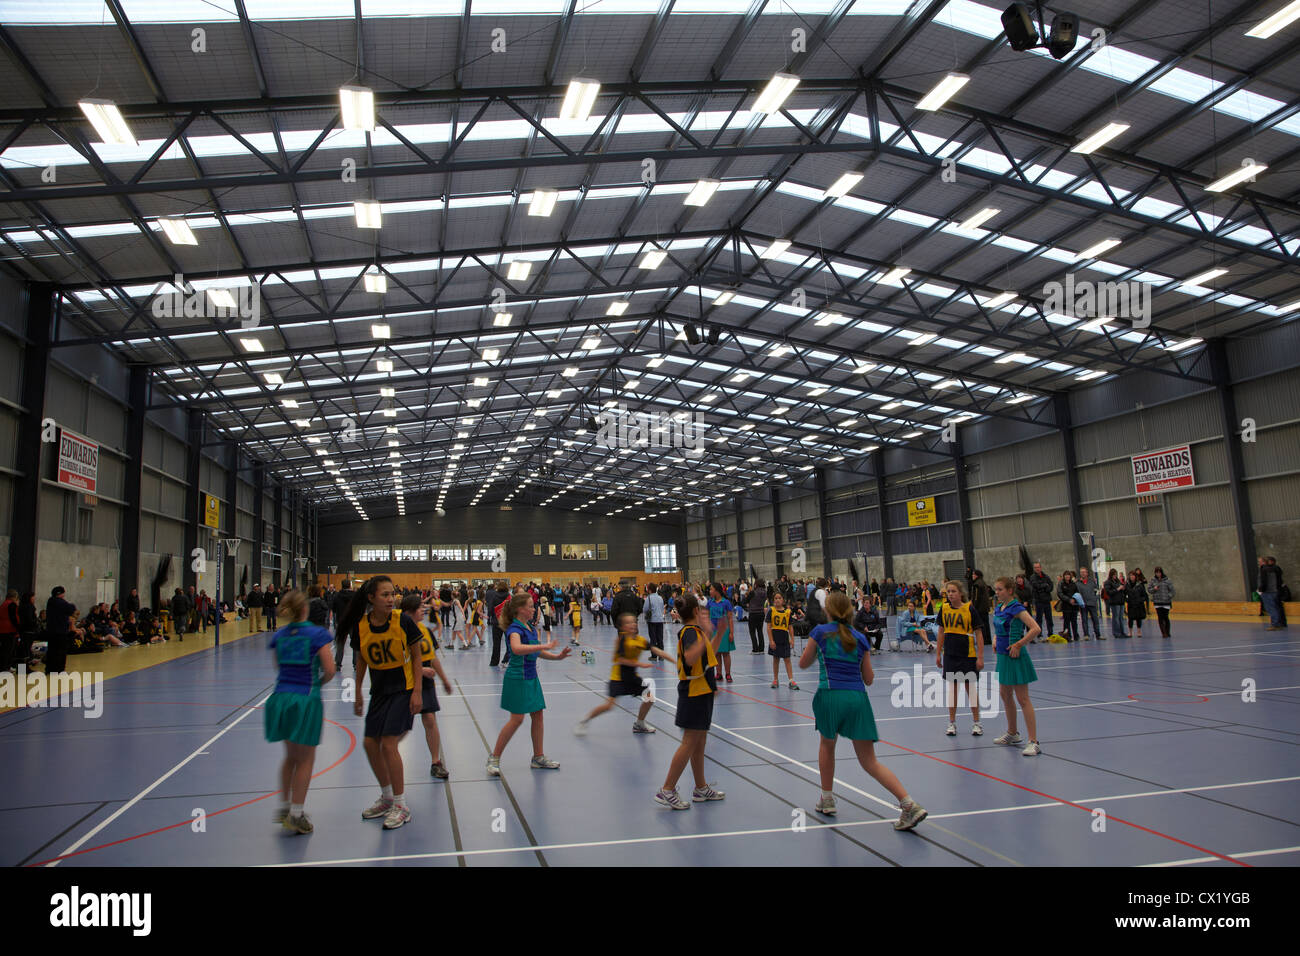 Netball Tournament, South Otago Netball Centre, Balclutha, South Otago, South Island, New Zealand - Stock Image